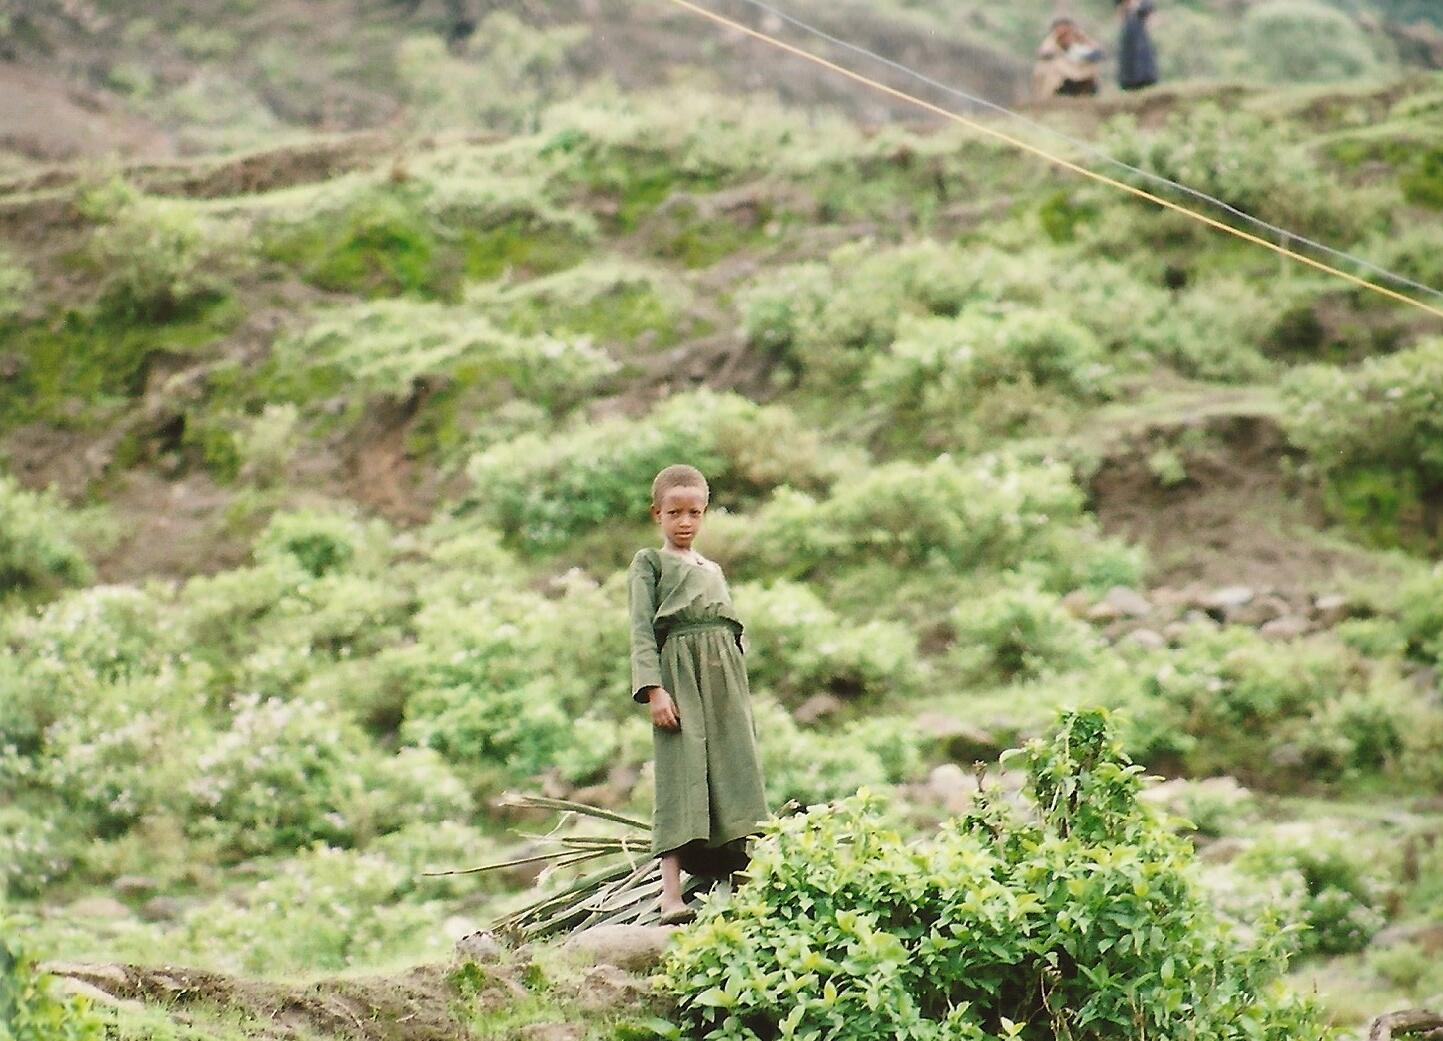 RT @gigglesyee: @lonelyplanet A curious gaze on the hilly mountains near Lalibela.  Northern Ethiopia #lp #travel http://t.co/wEMTeqd85v